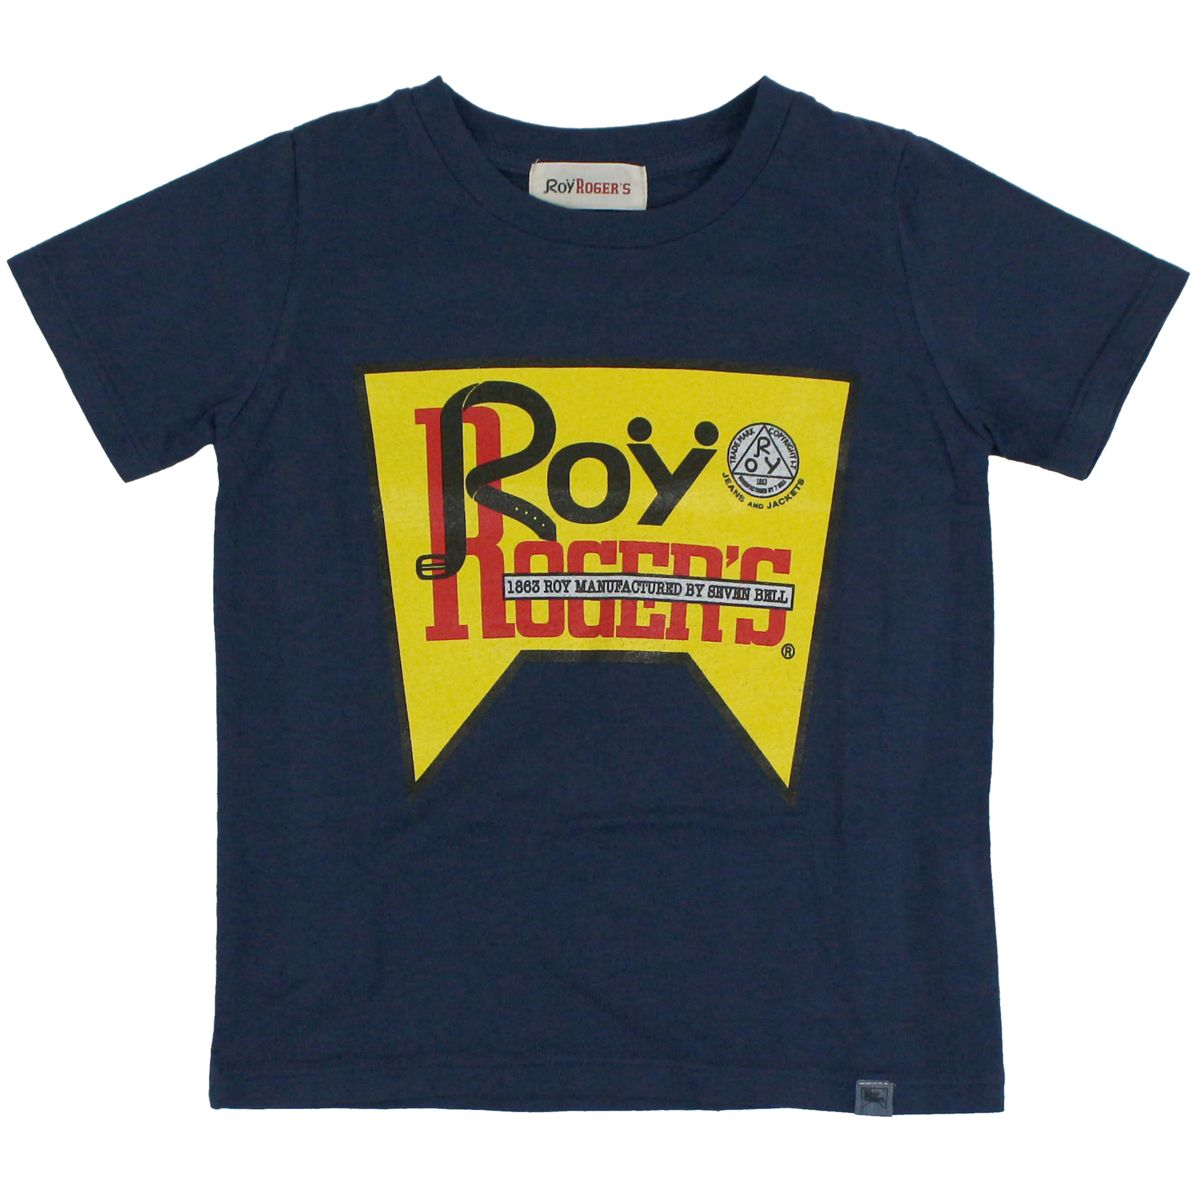 T-shirt with print Blue ROY ROGER'S